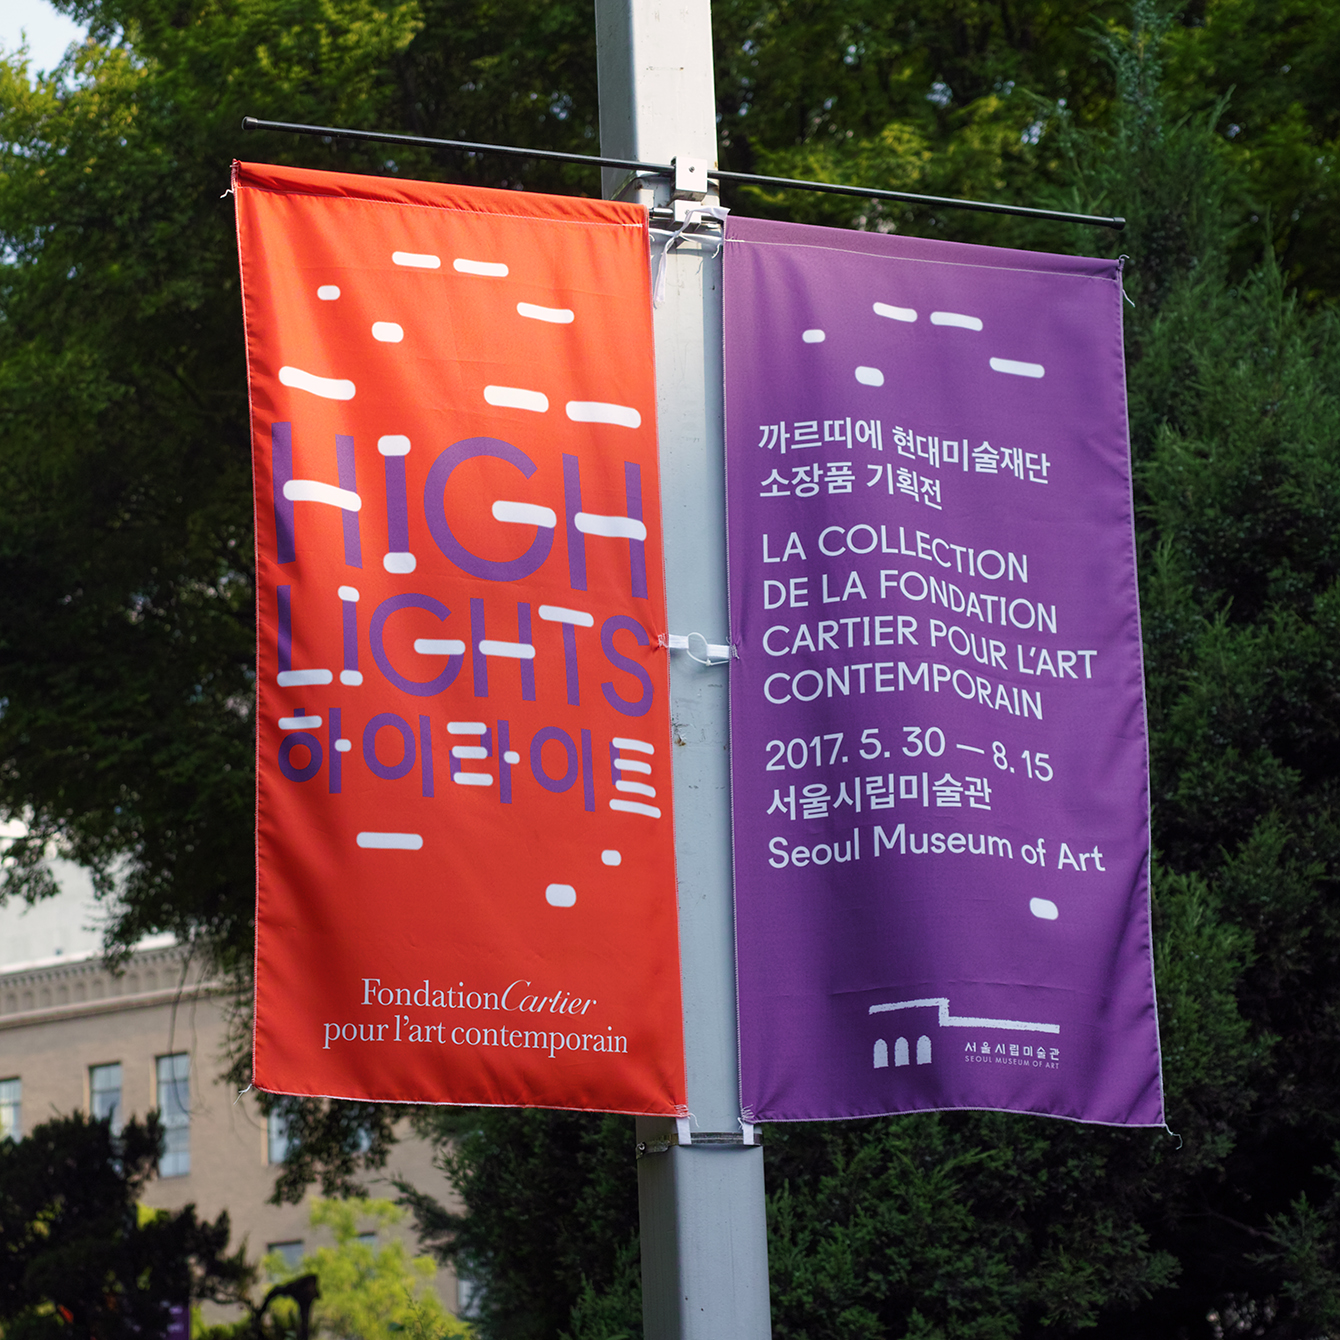 Visual identity and banners by Studio fnt for South Korean art exhibition Highlights at SeMA